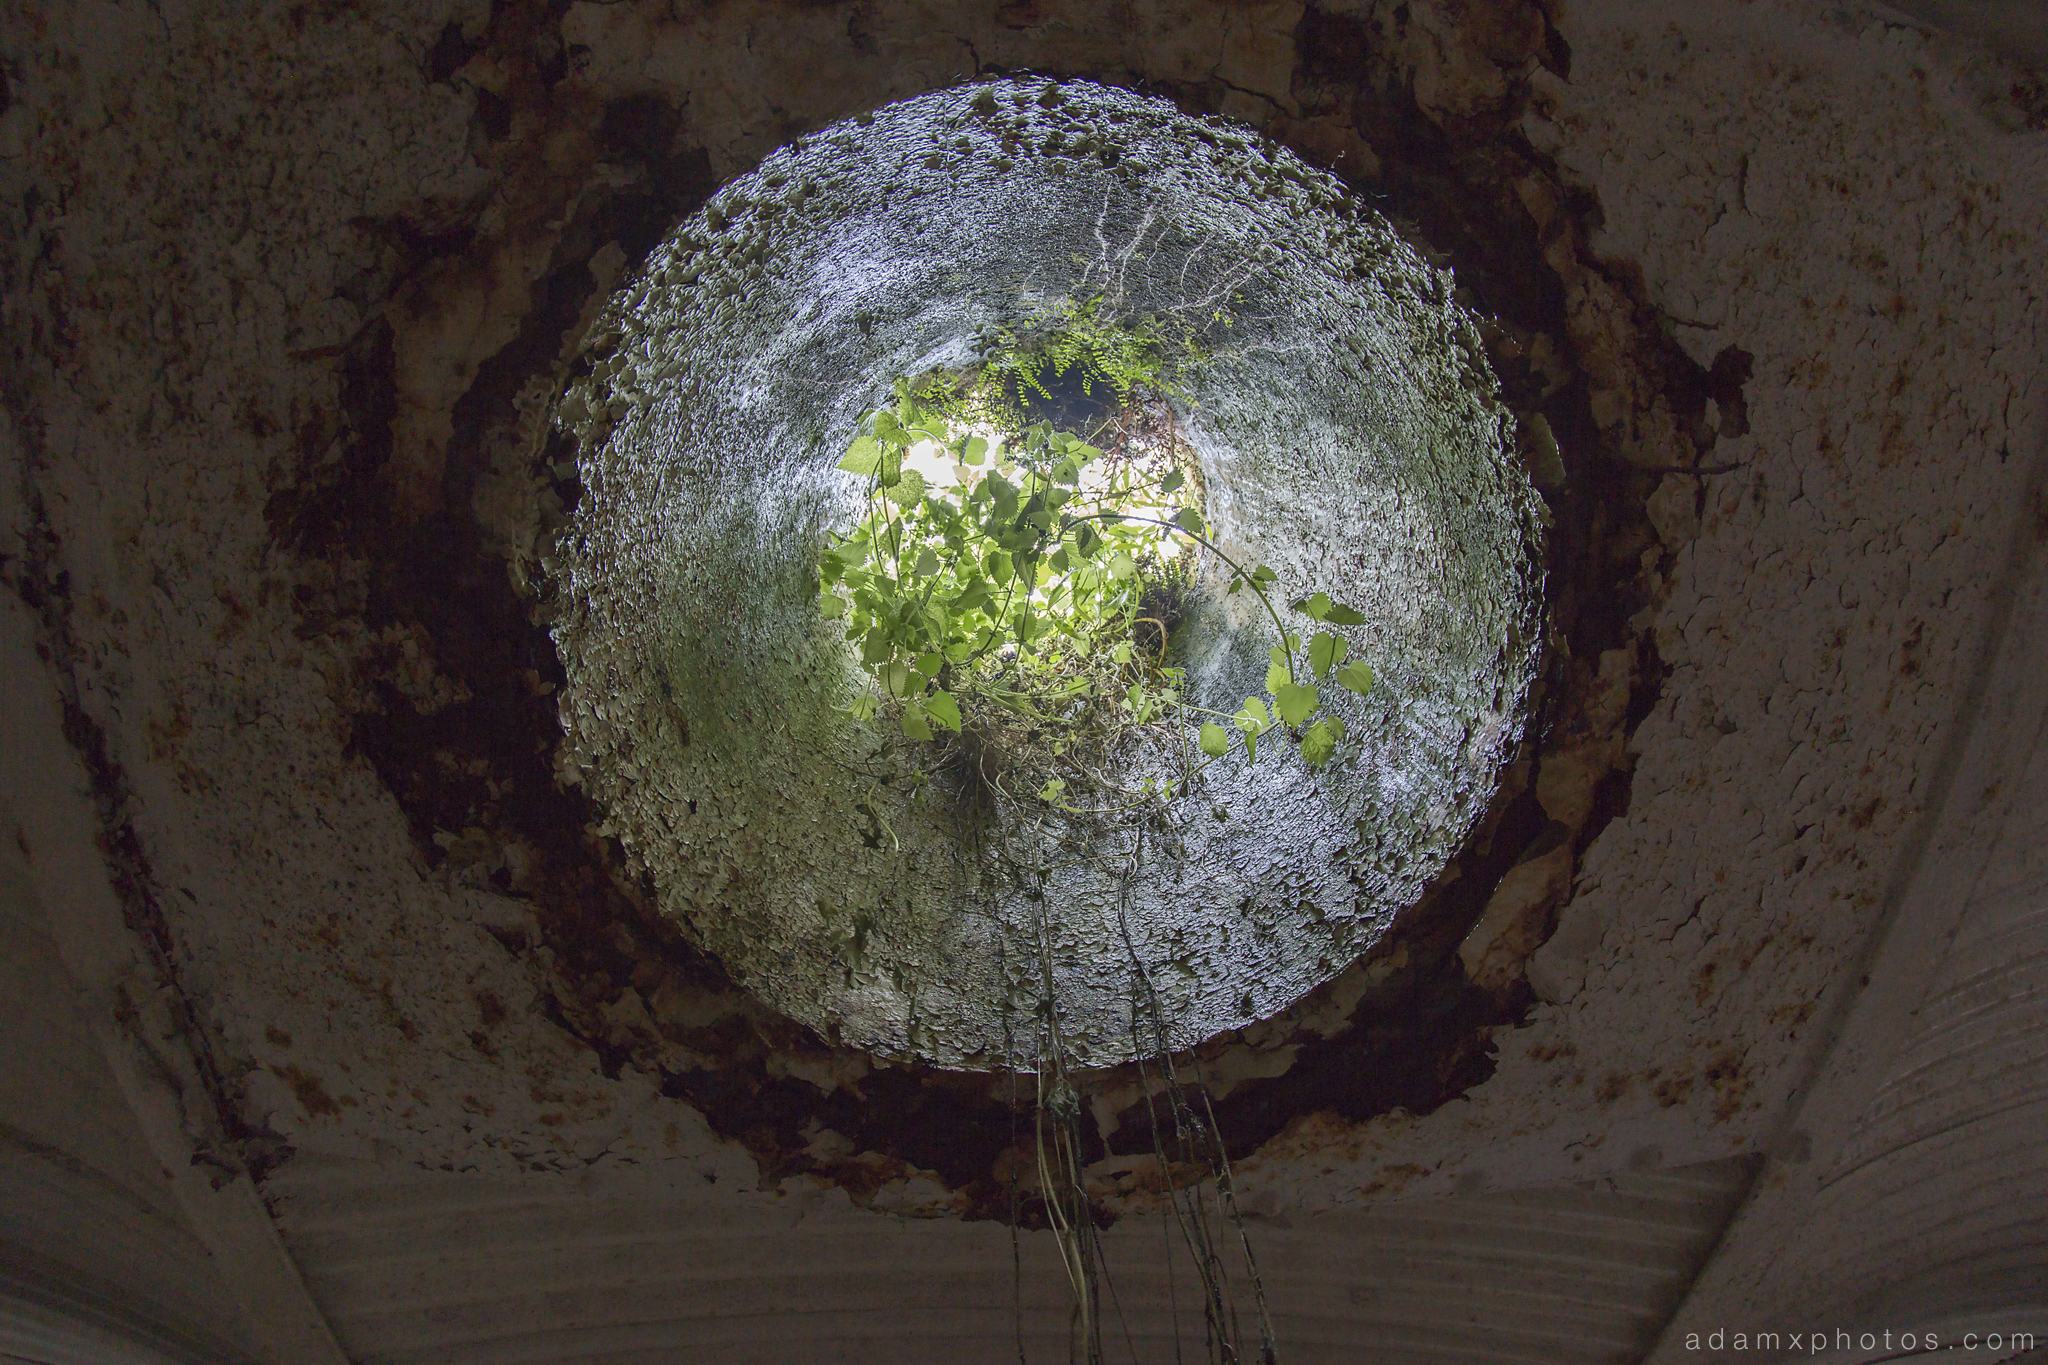 Underwater Ballroom Witley Adam X Whitaker Wright Urbex Urban Exploration skylight light hole green overgrowth photo photos report decay detail glass windows UE abandoned derelict unused empty disused decay decayed decaying grimy grime